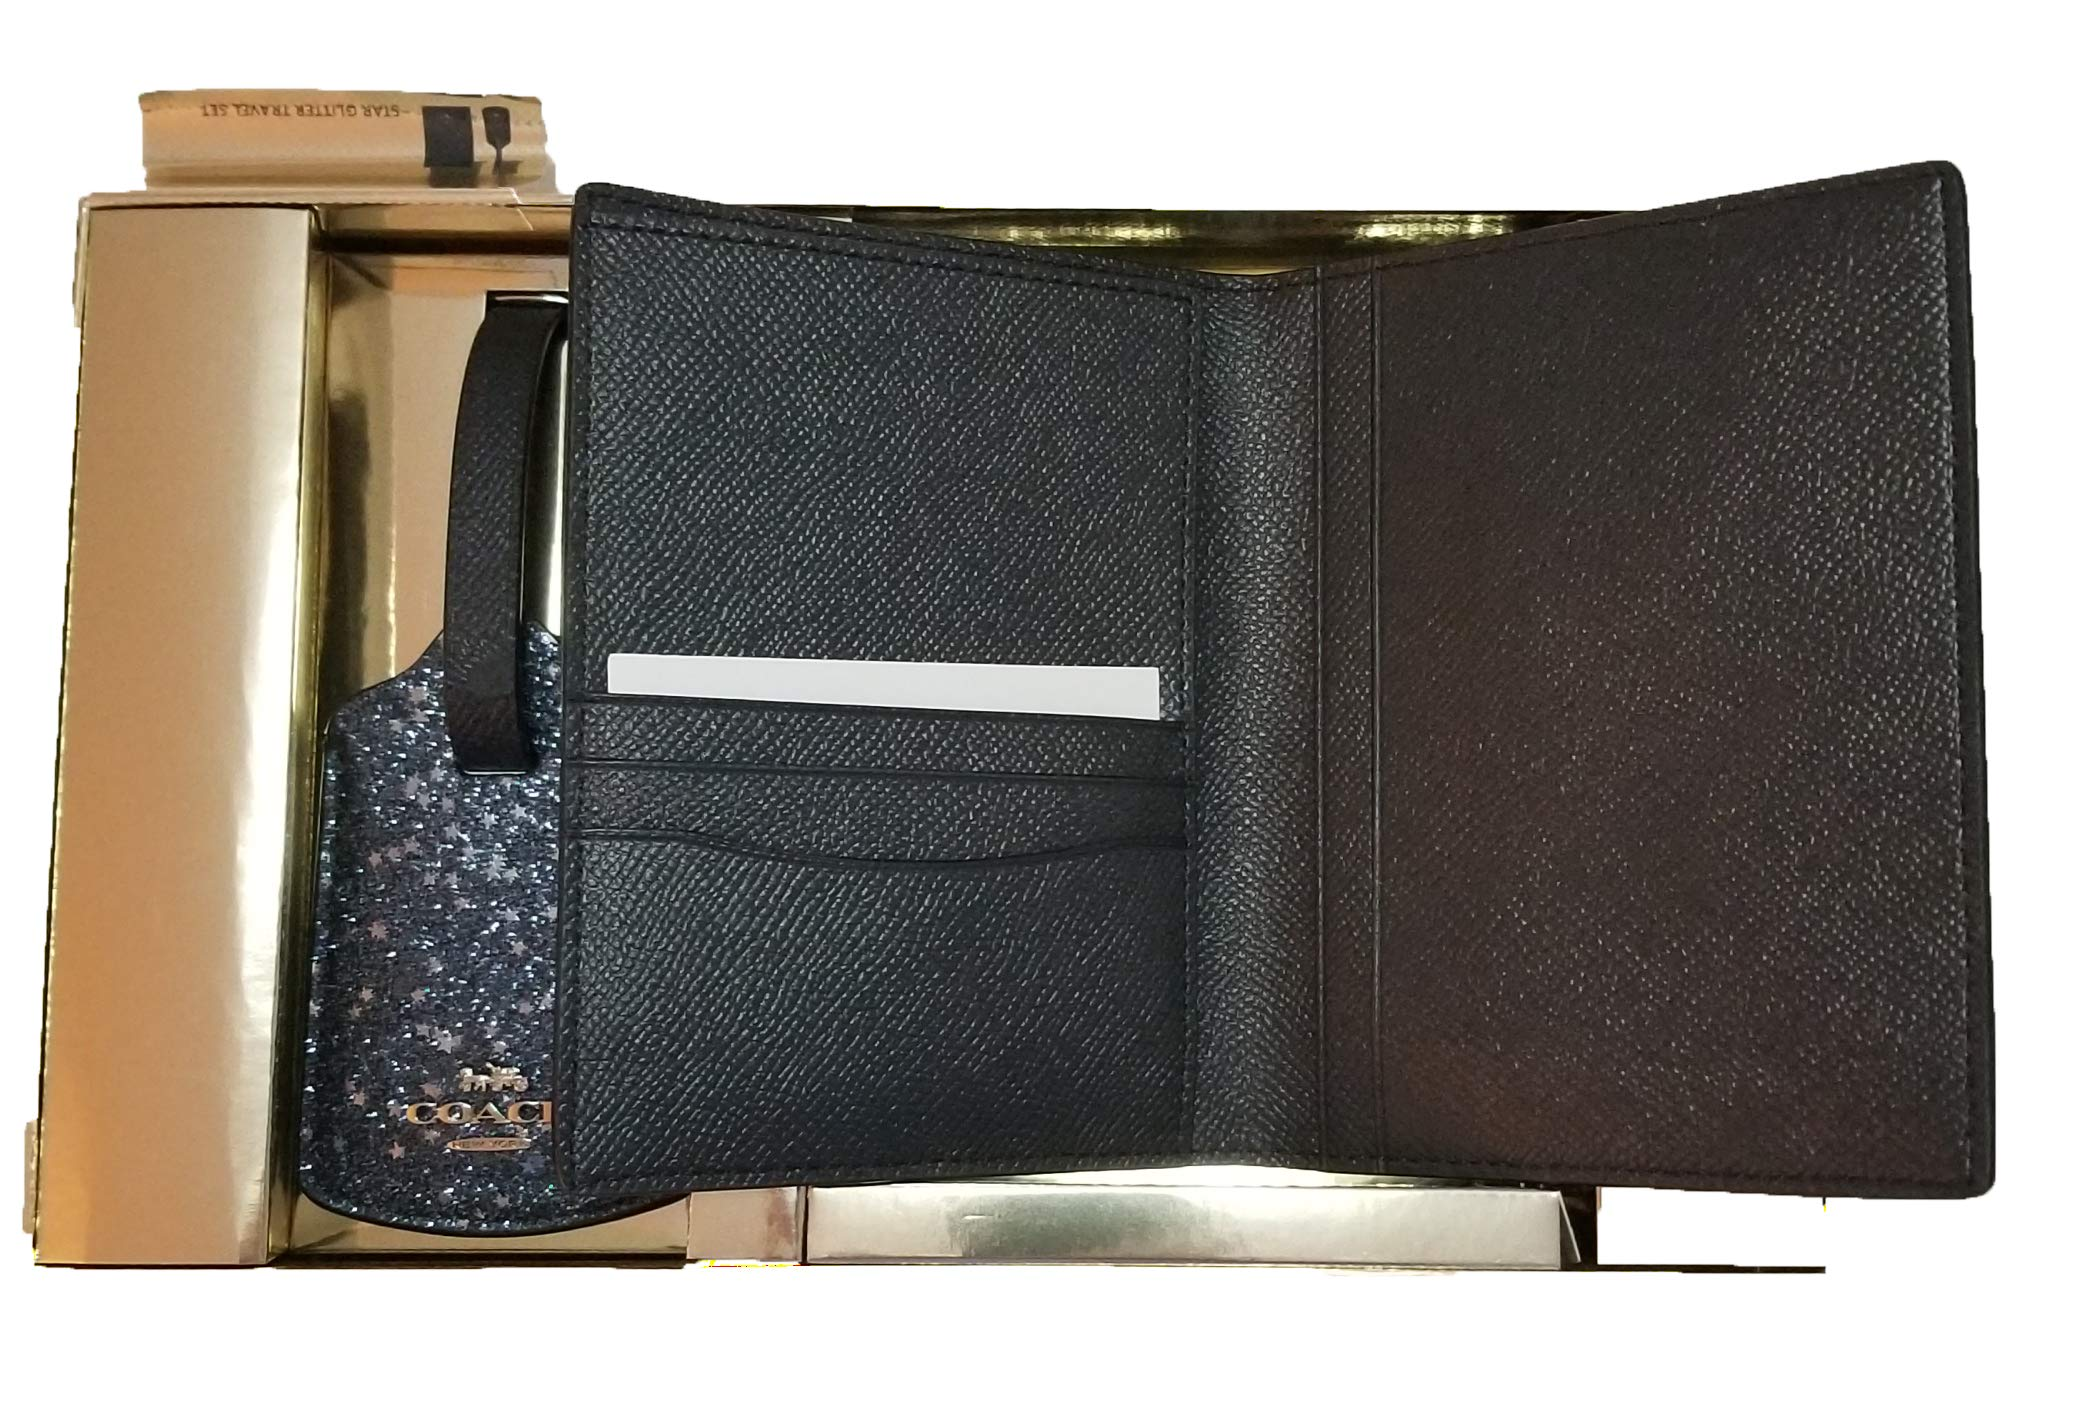 Coach Crossgrain Leather Passport Case & Crossgrain Leather Luggage Tag Travel Gift Box Set F38644 (Midnight/Silver) by COACH (Image #3)